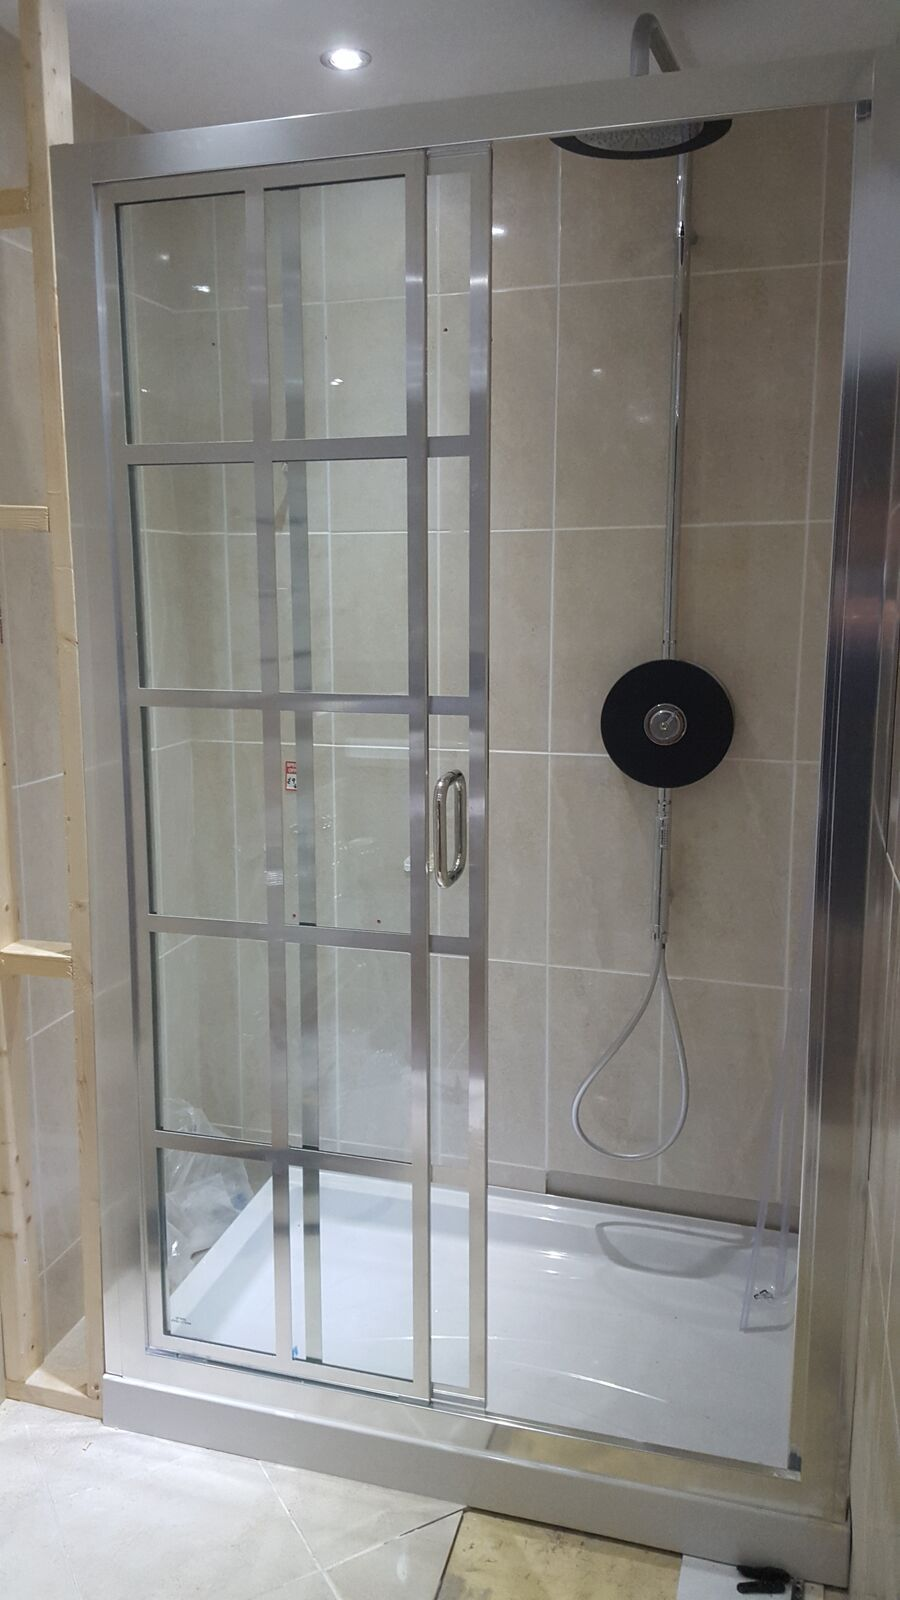 A Wonderful Grid Style Shower Enclosure With A Metal Finish For